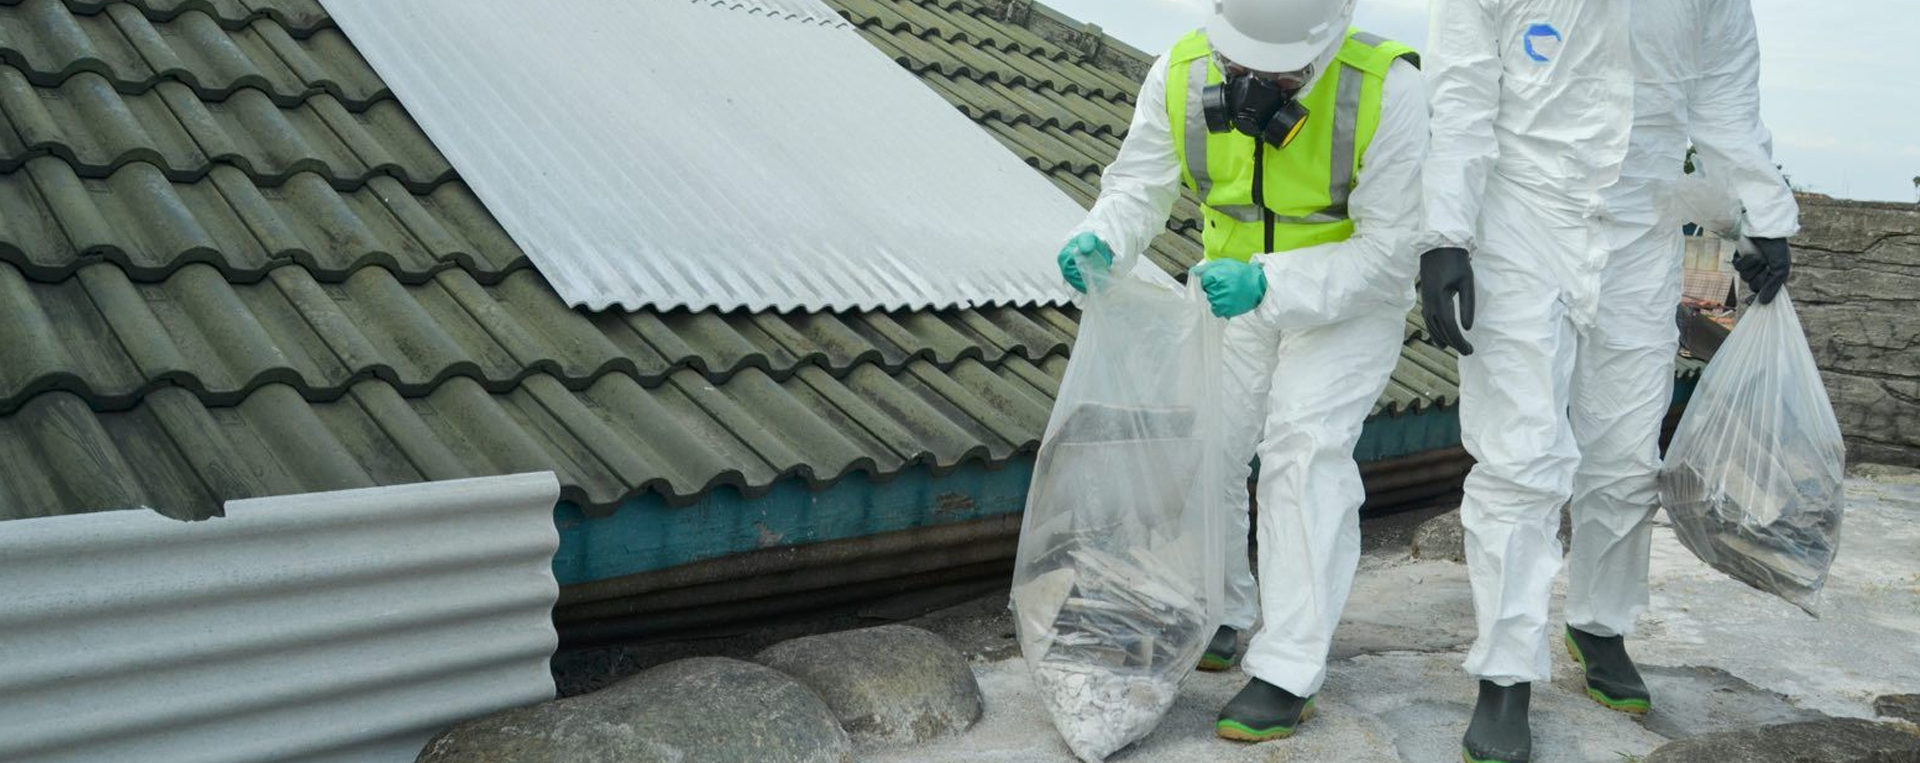 asbestos-removal-near-me-millicent